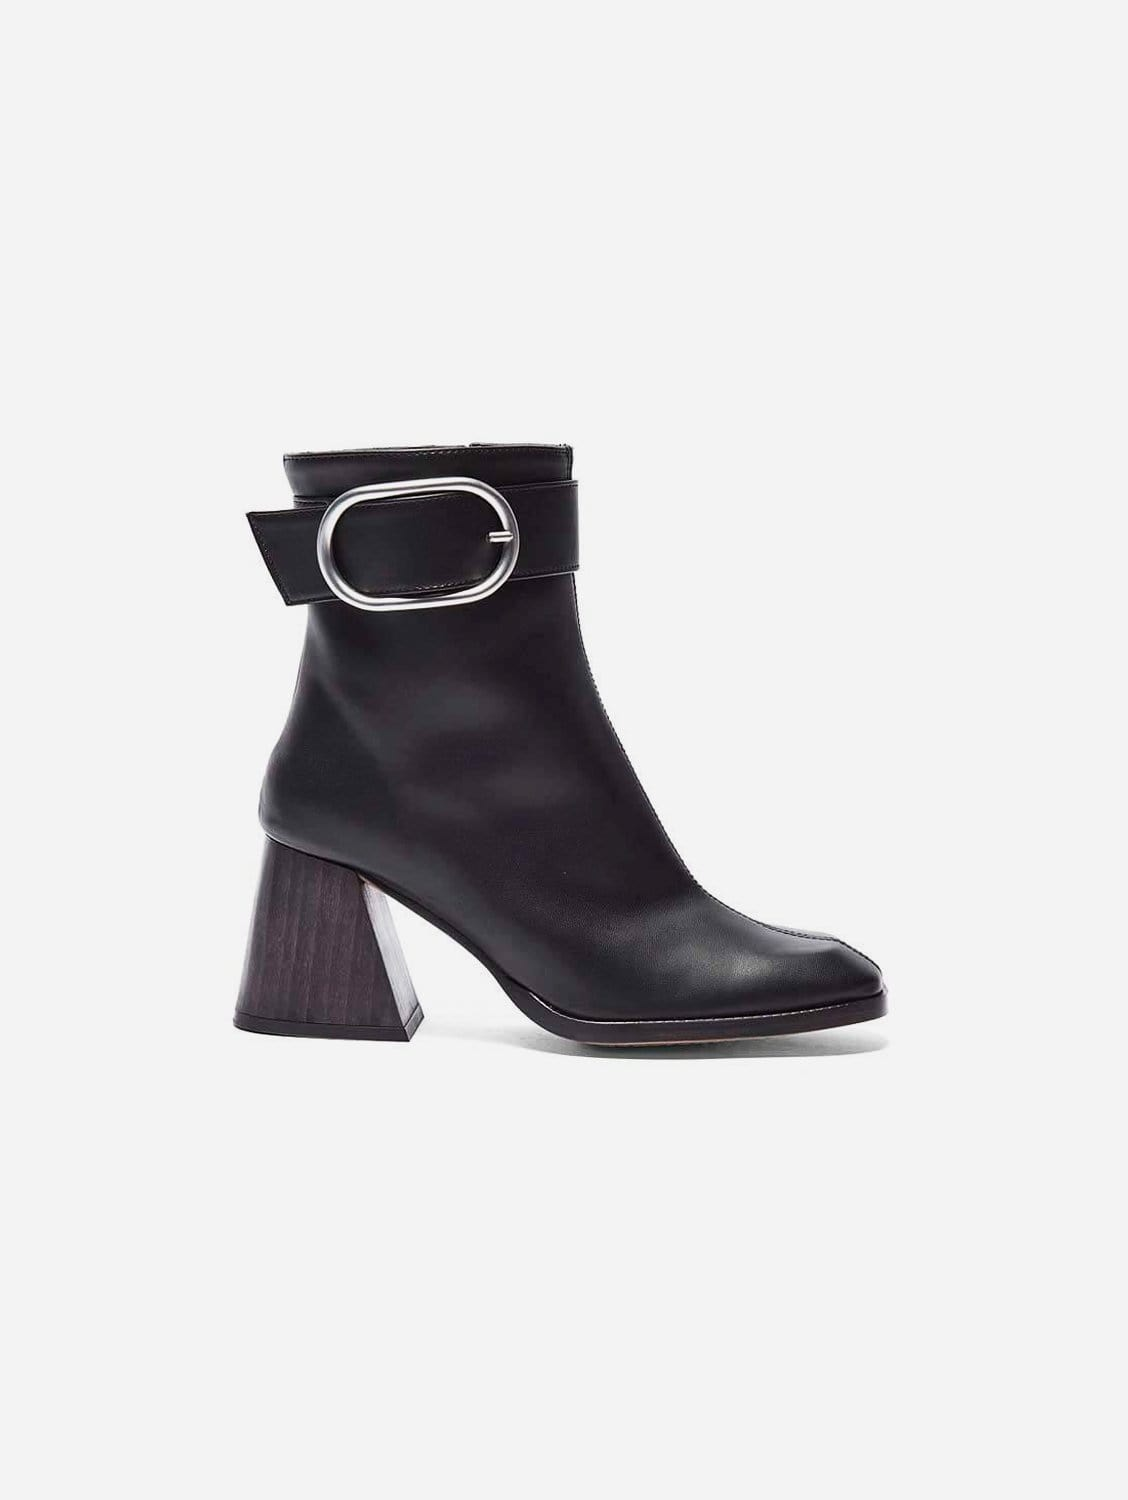 Laura Vegan Leather Ankle Boots   Black